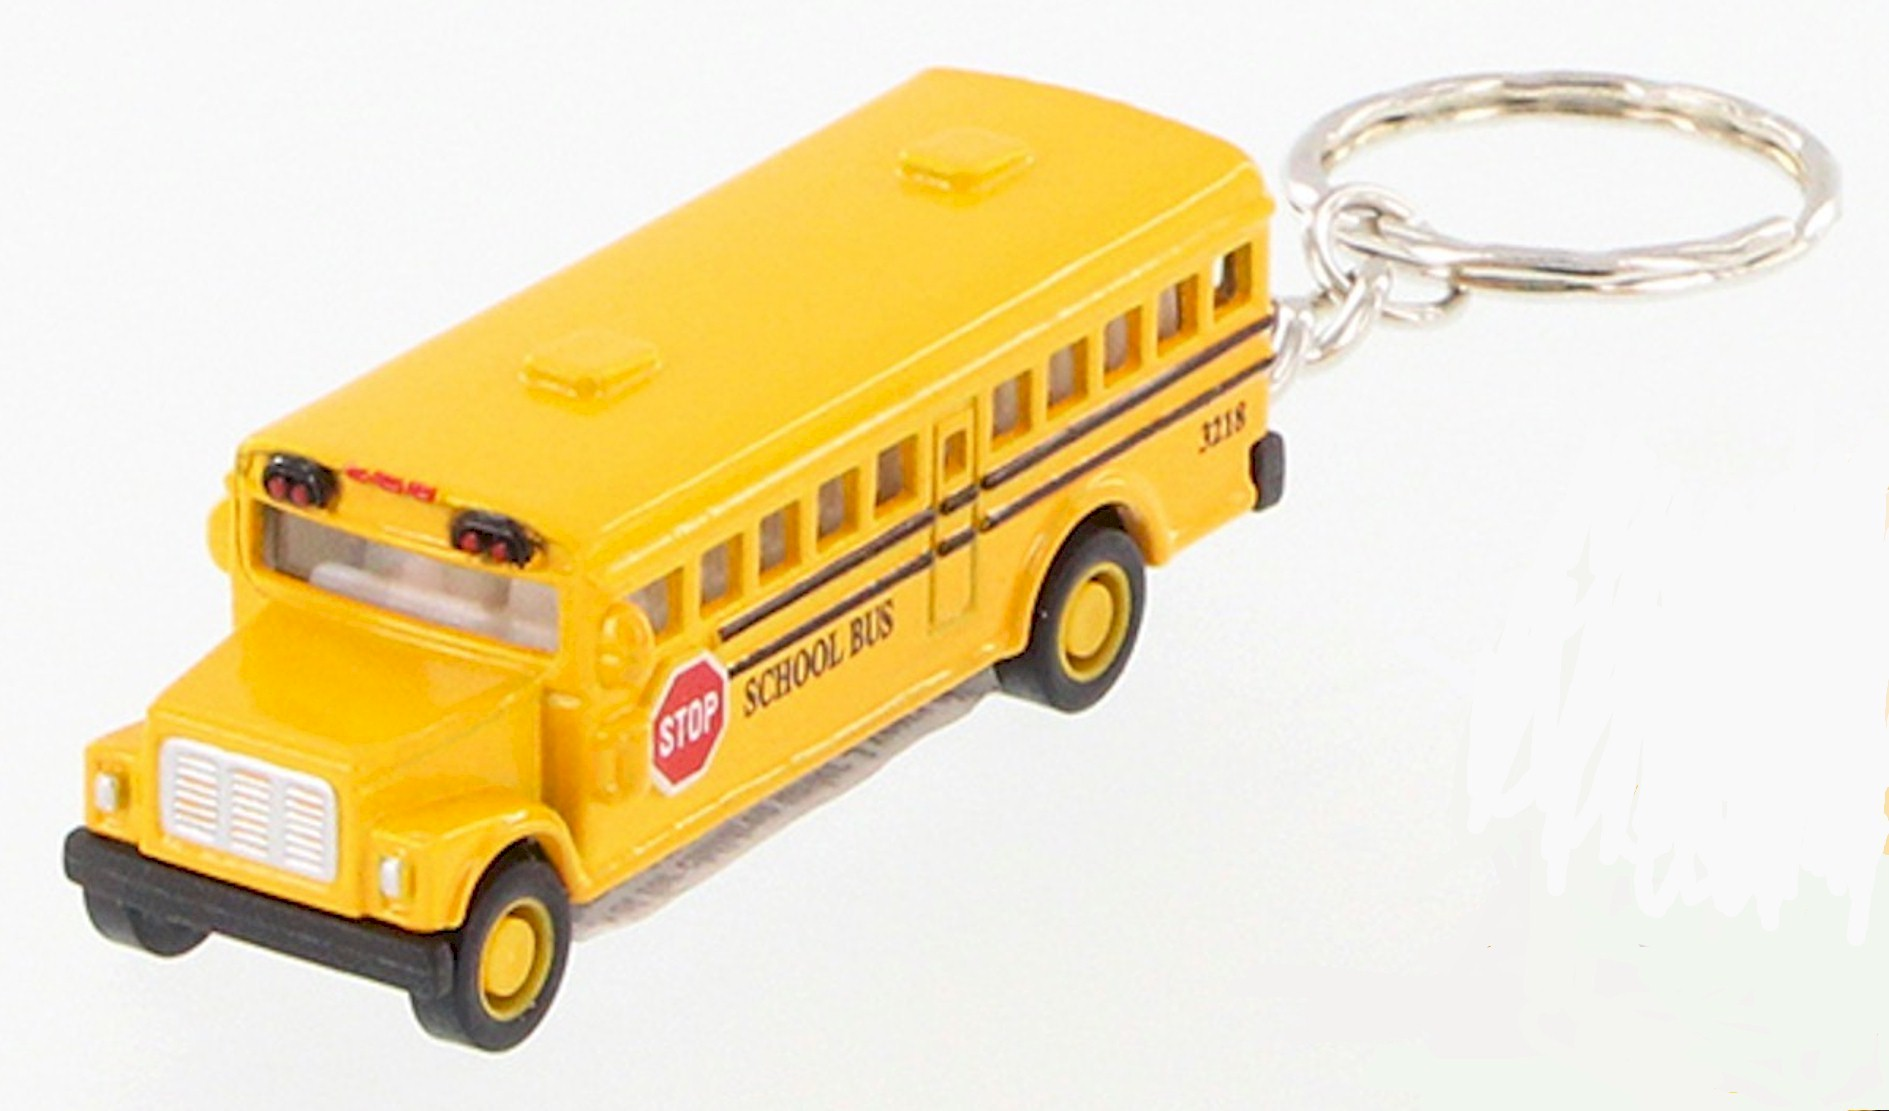 Personalizable Bus Key Ring